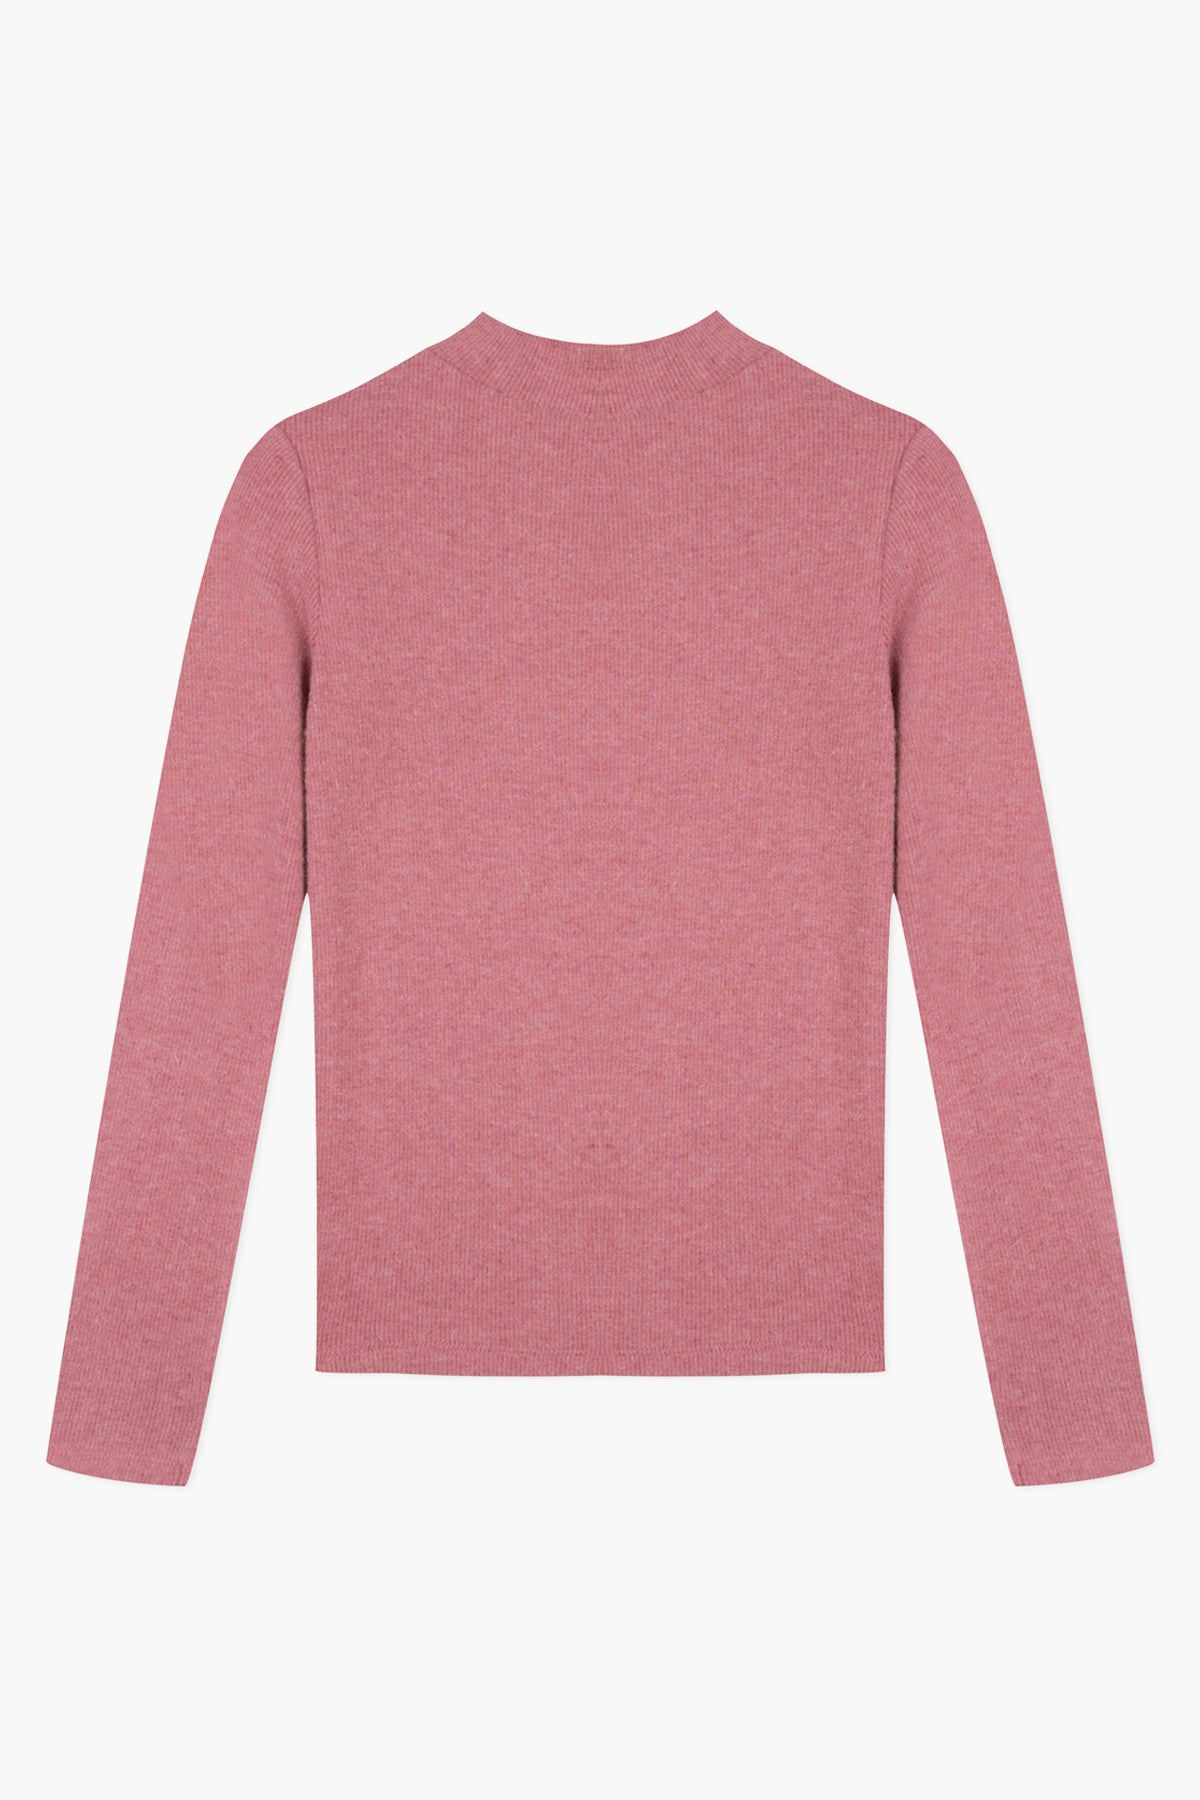 Lili Gaufrette Angora Mock Neck Top - Rose